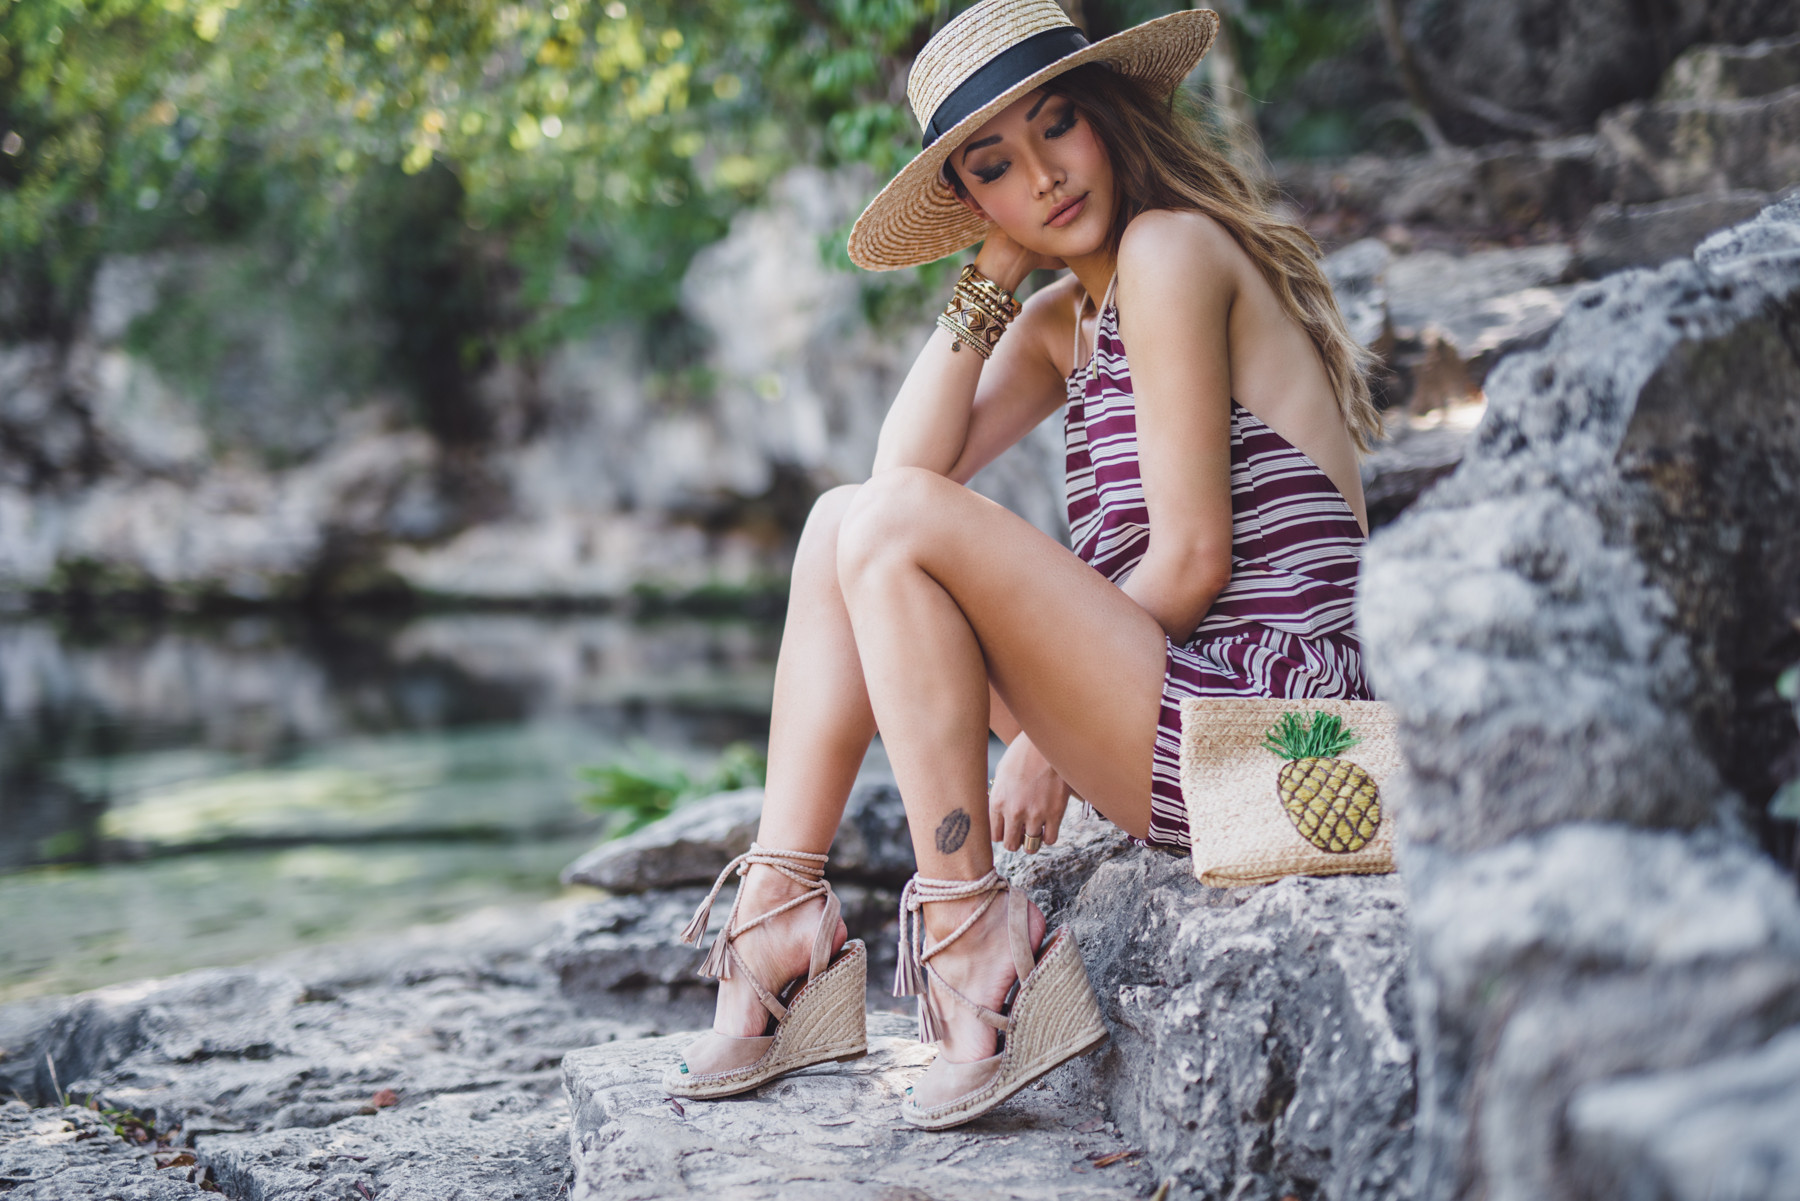 Rompers and Espadrilels - Platform Espadrilles For Effortless Summer Style // NotJessFashion.com